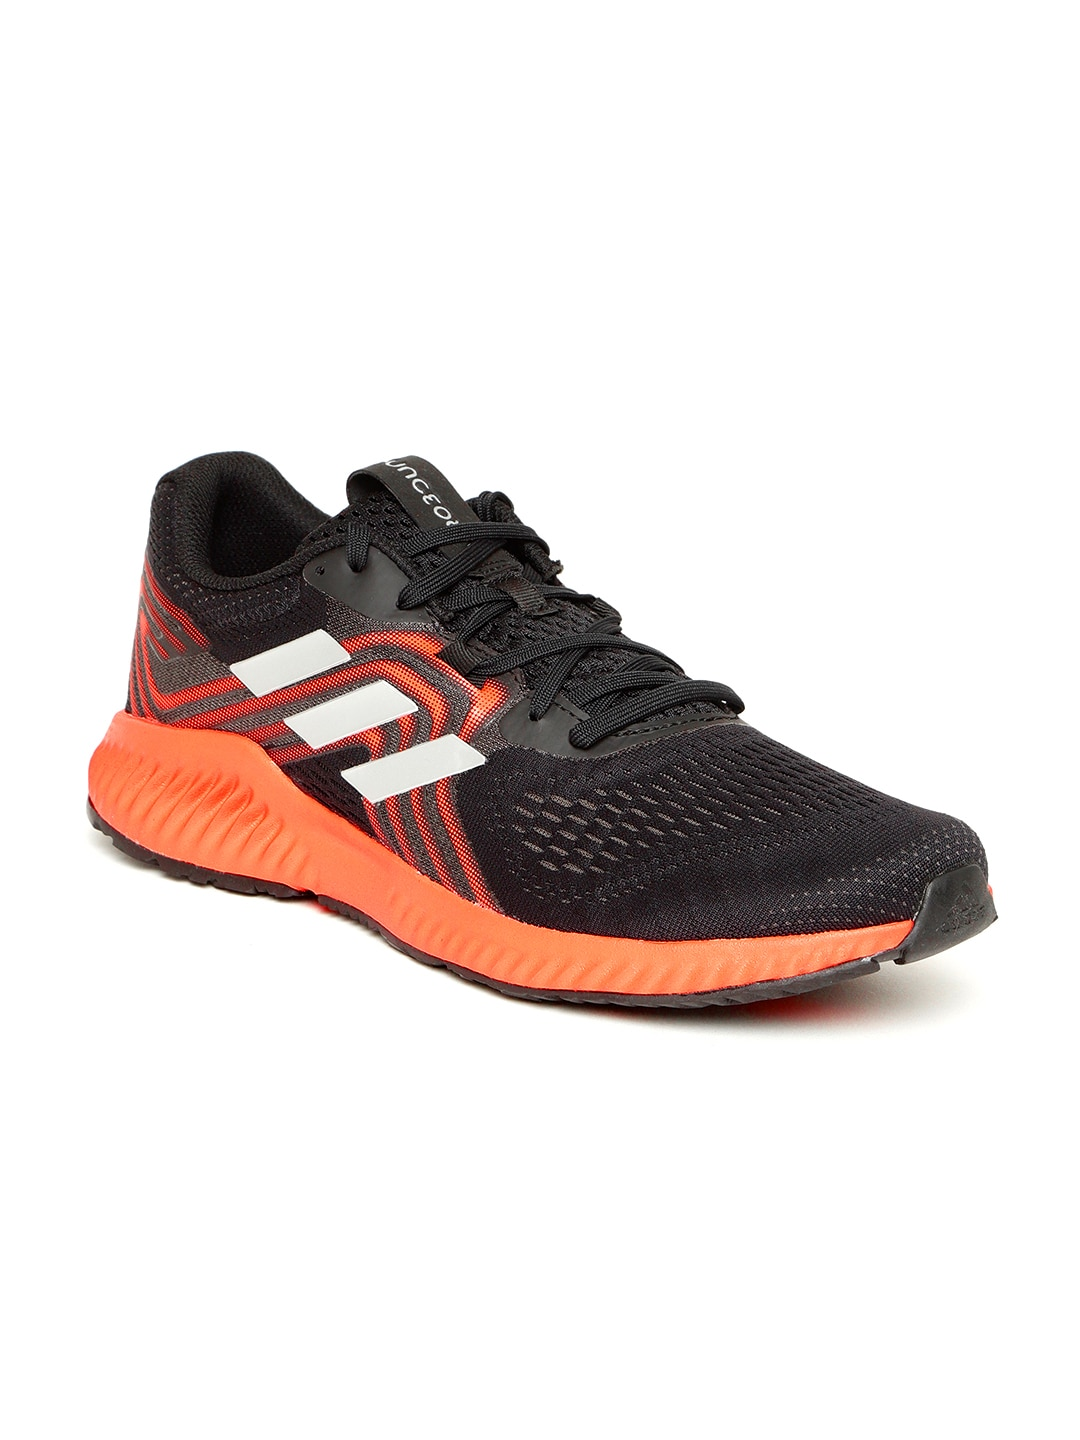 Adidas Bounce Shoes Hat - Buy Adidas Bounce Shoes Hat online in India 2c74c04ed